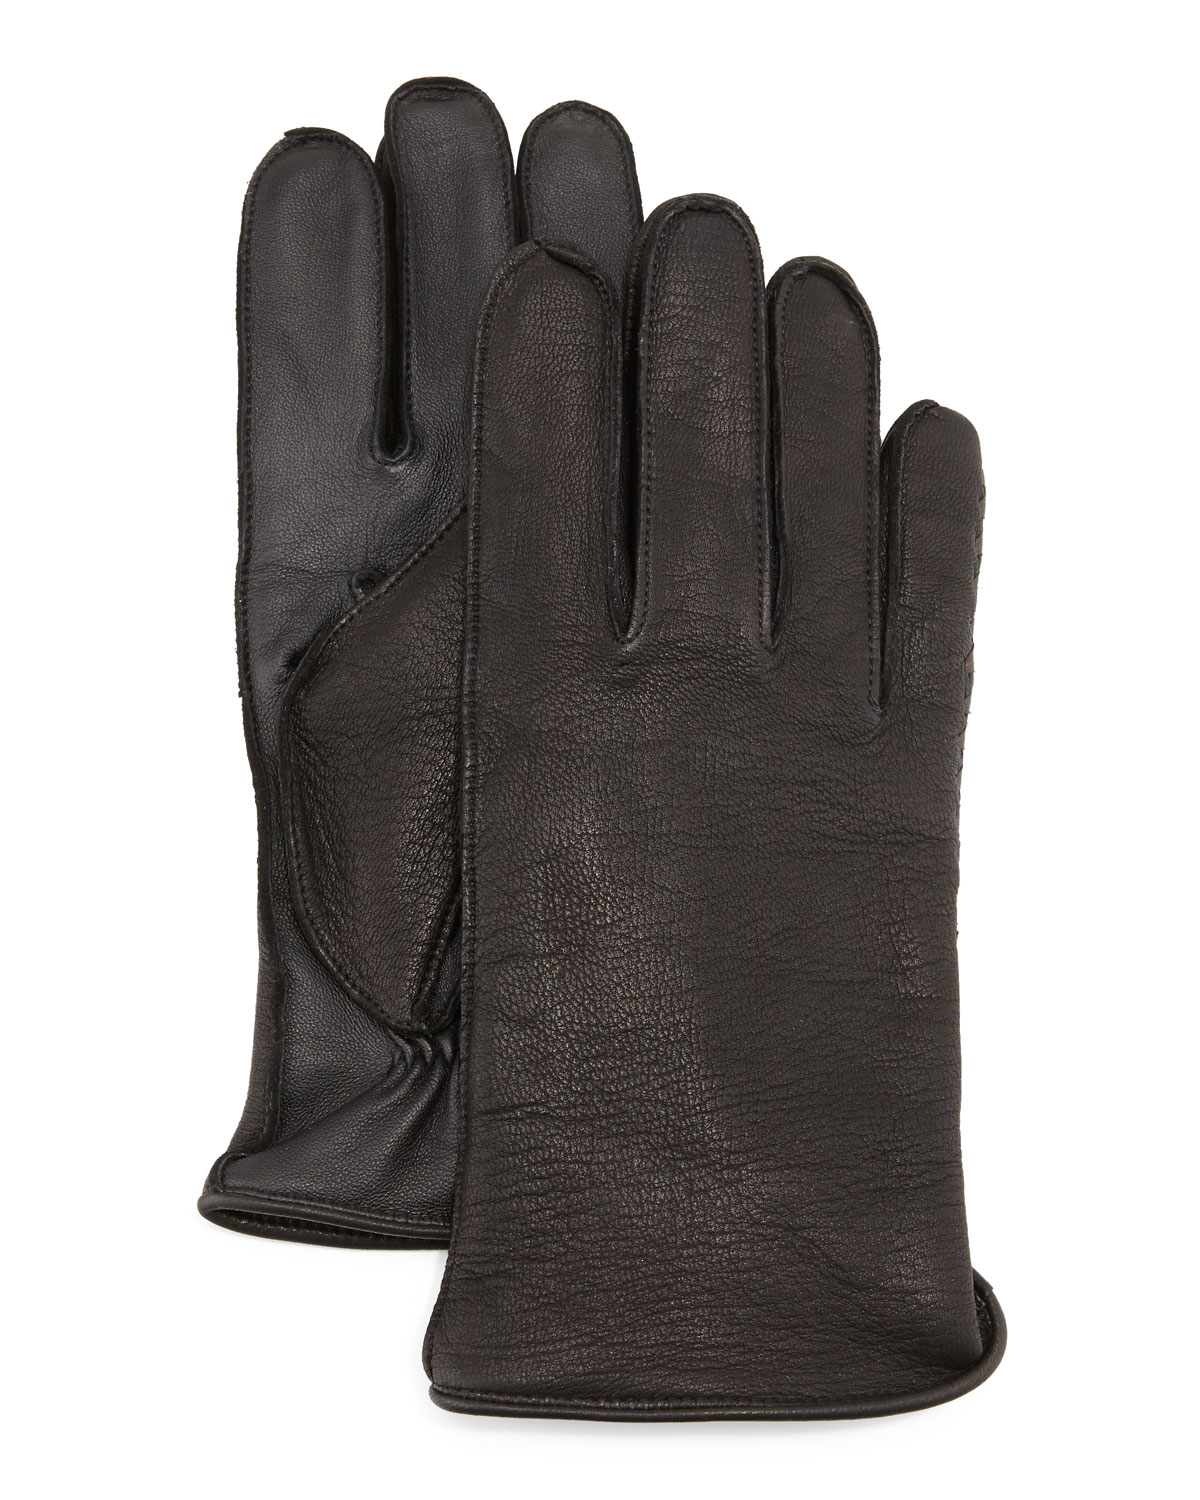 Whip Tech Leather Gloves, Black